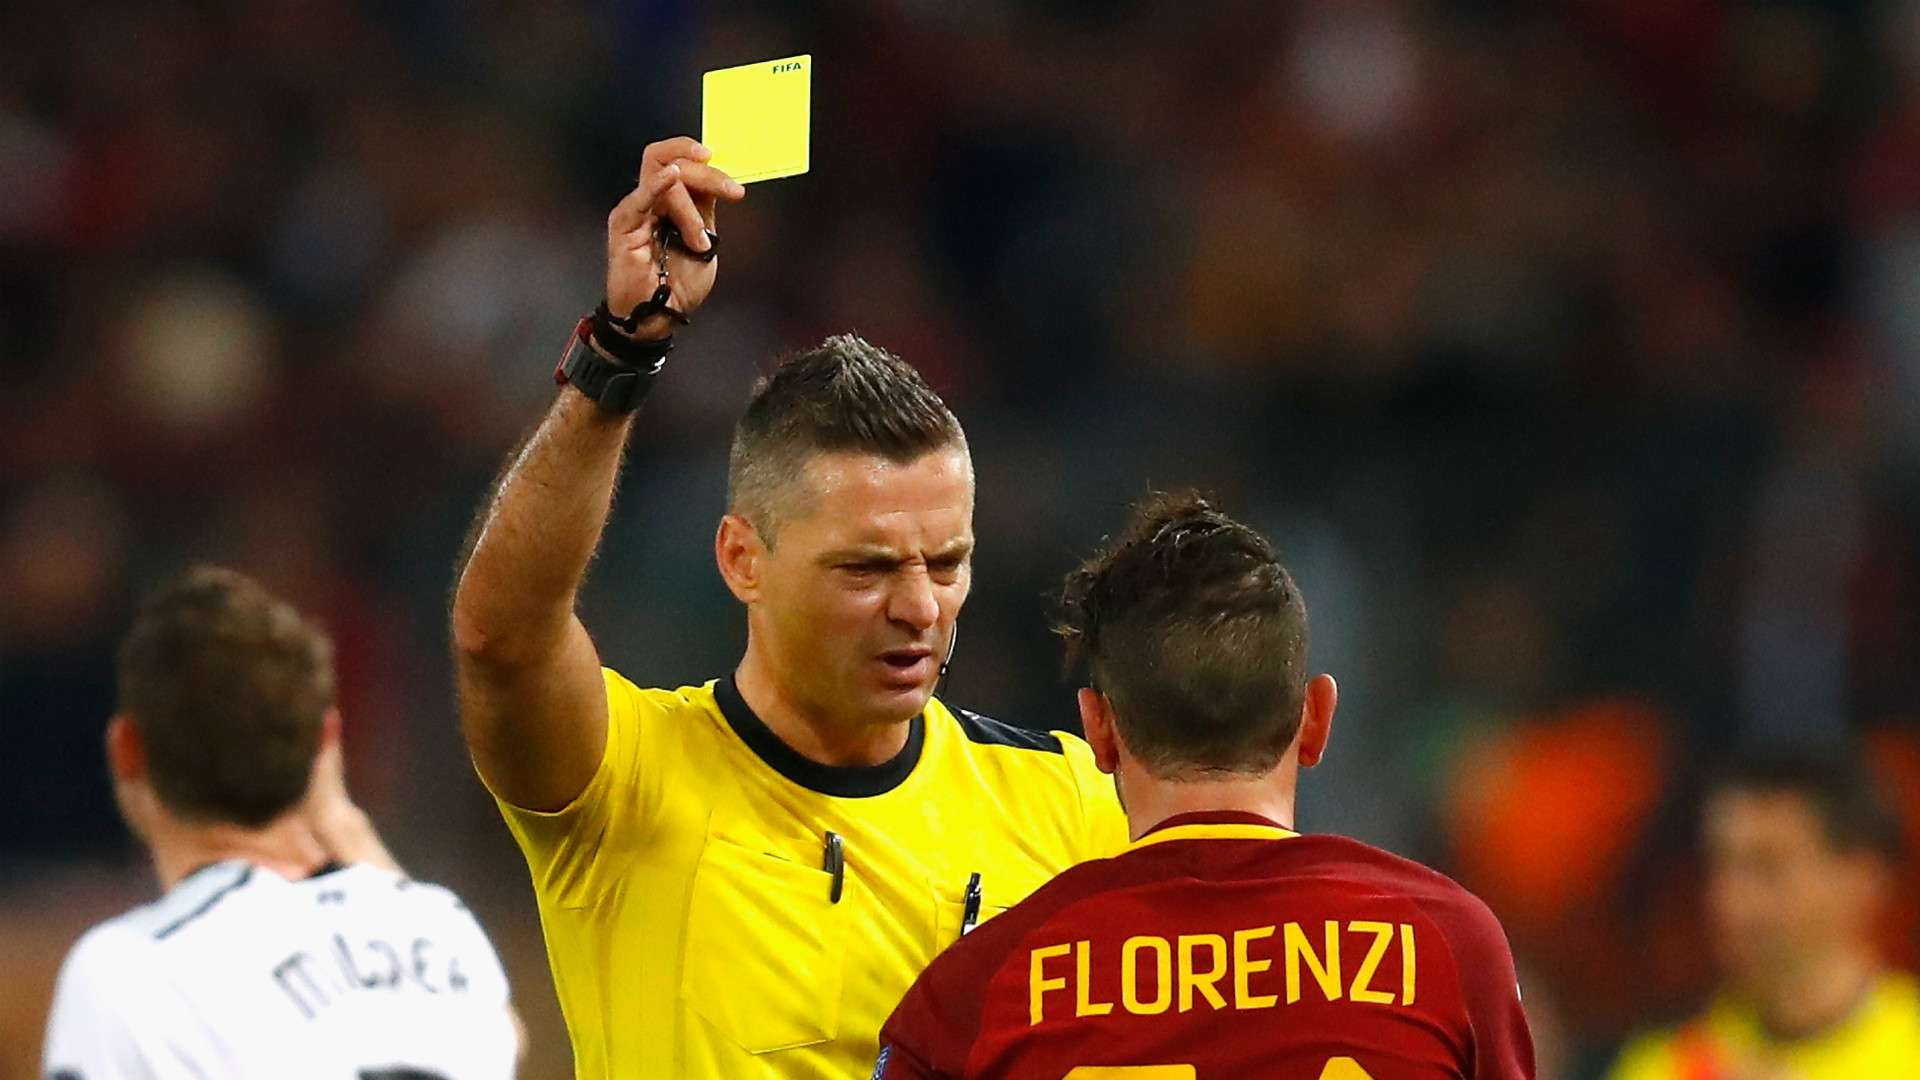 Betting Basics: How many points is a yellow card and what are